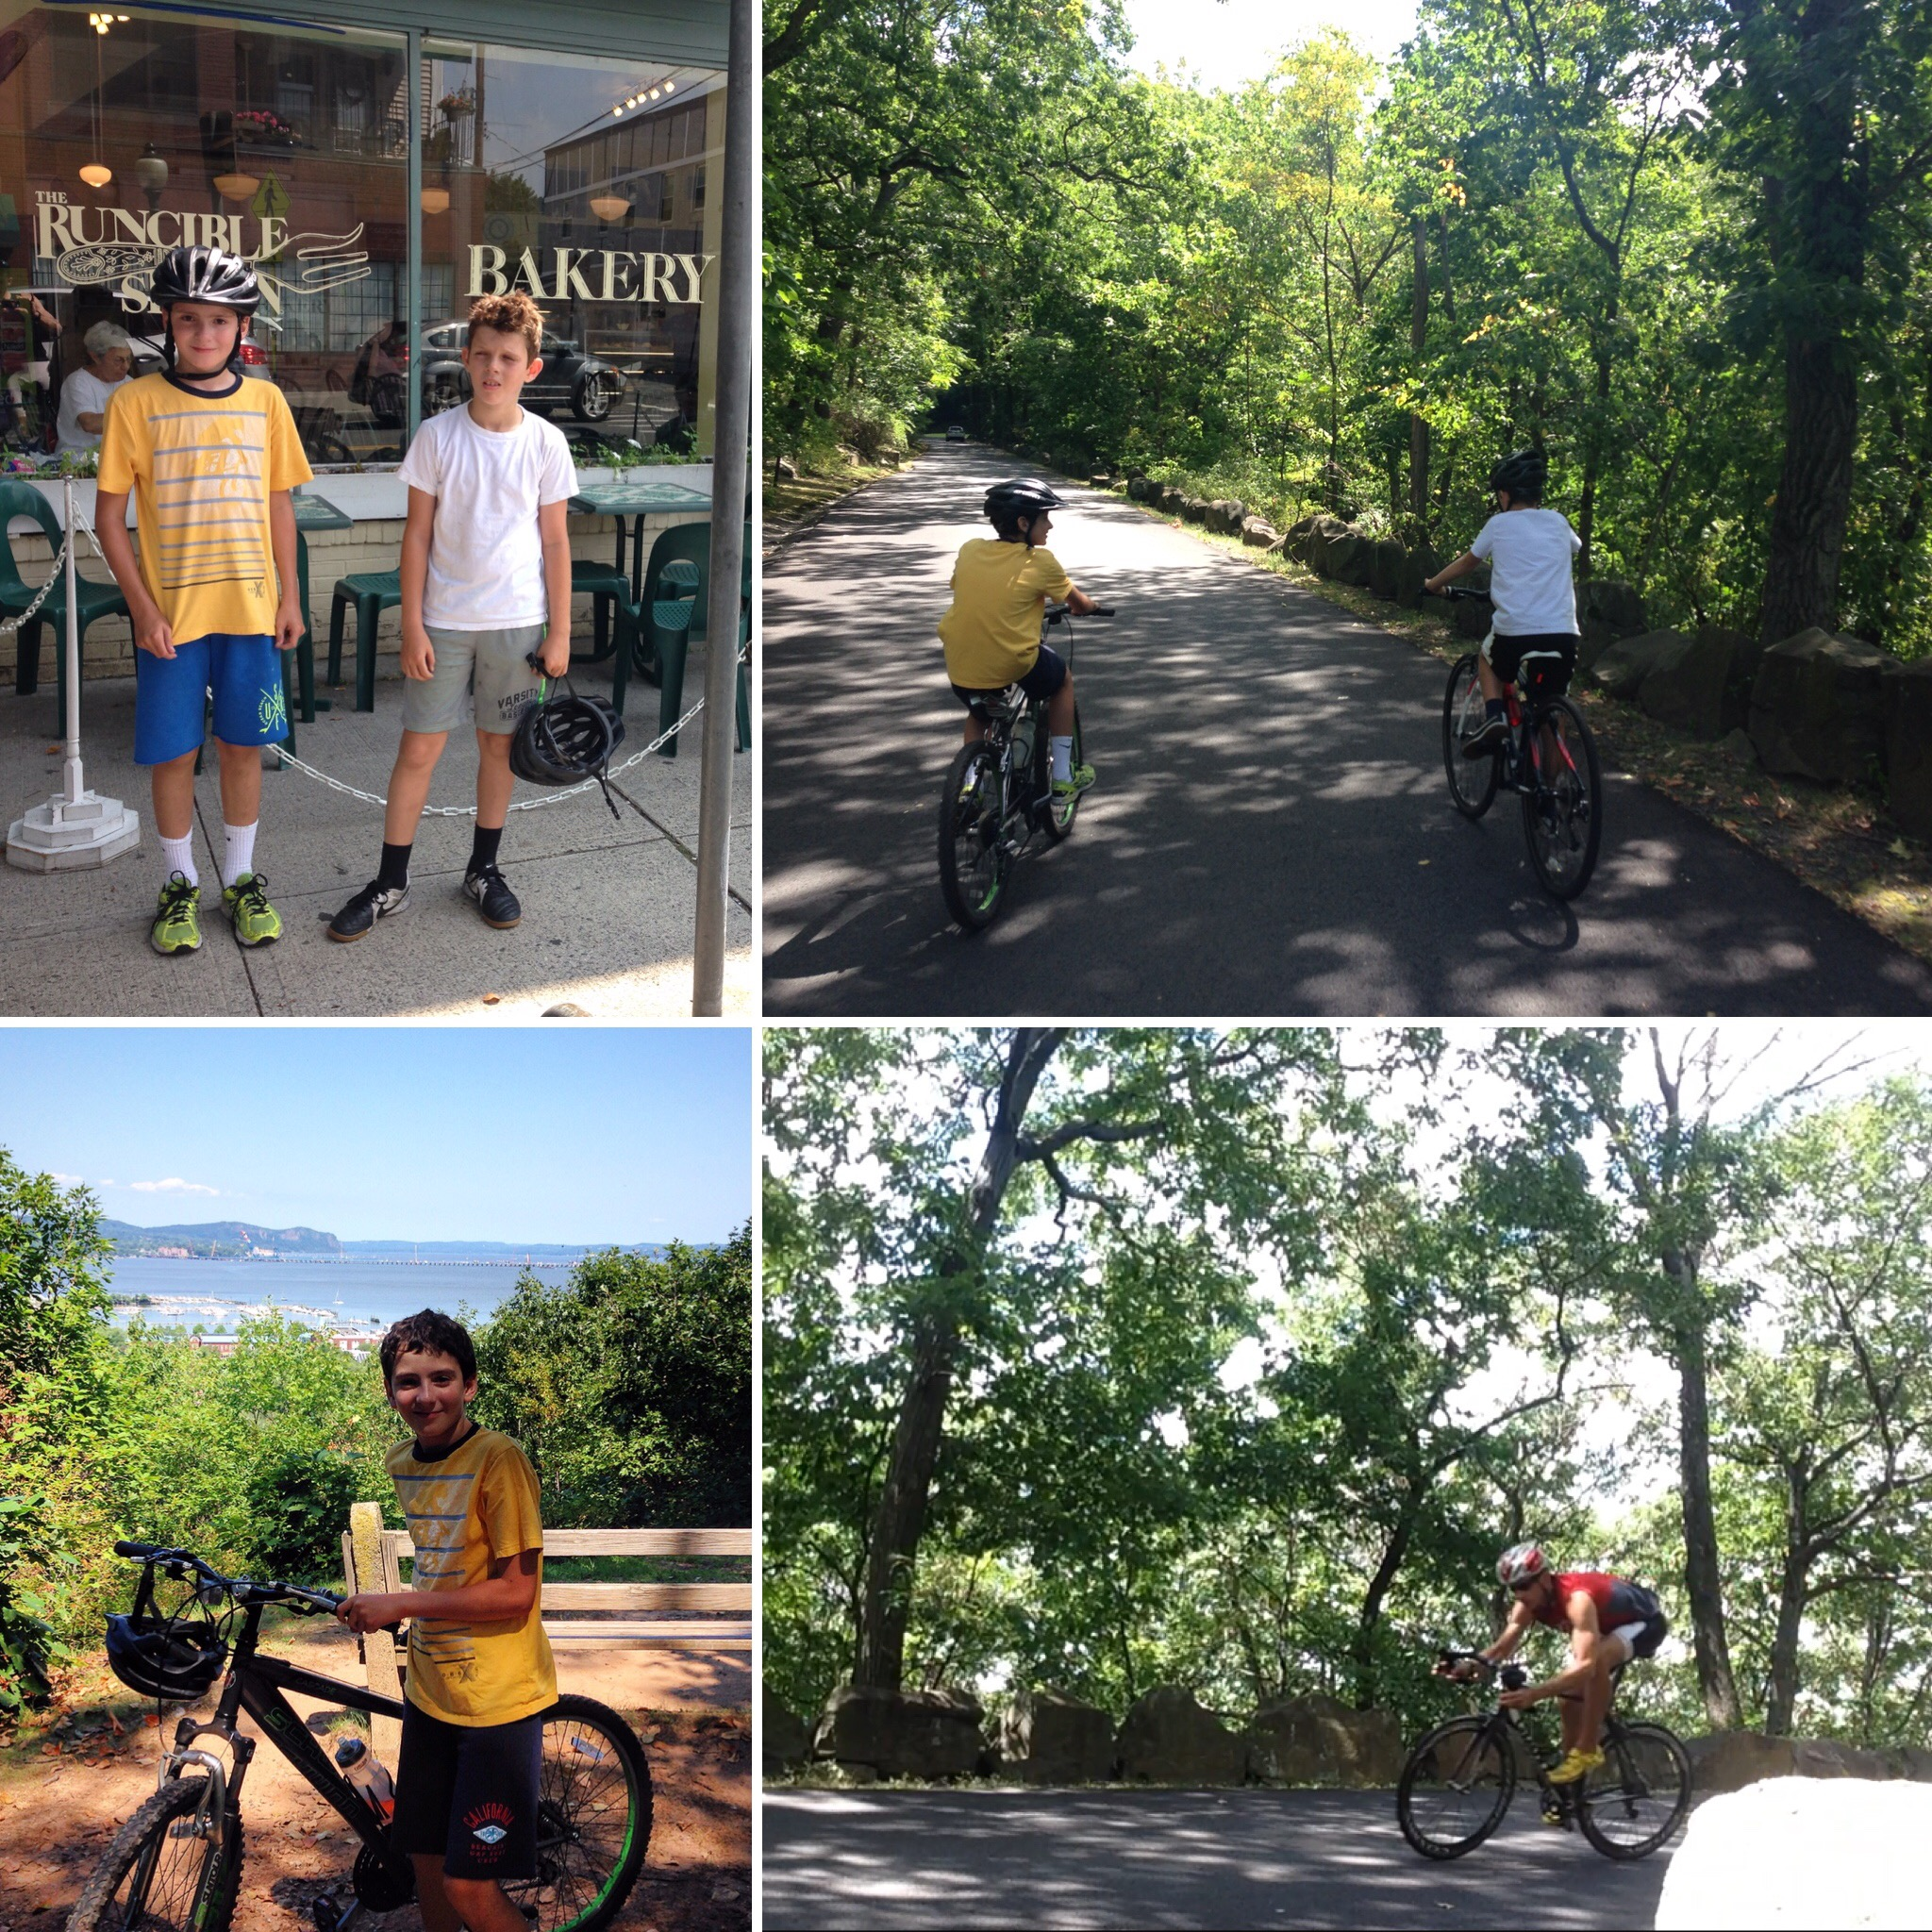 NYC Running Coach Sean Fortune teaches kids to ride bikes safely for fun and fitness in New York City and the surrounding area